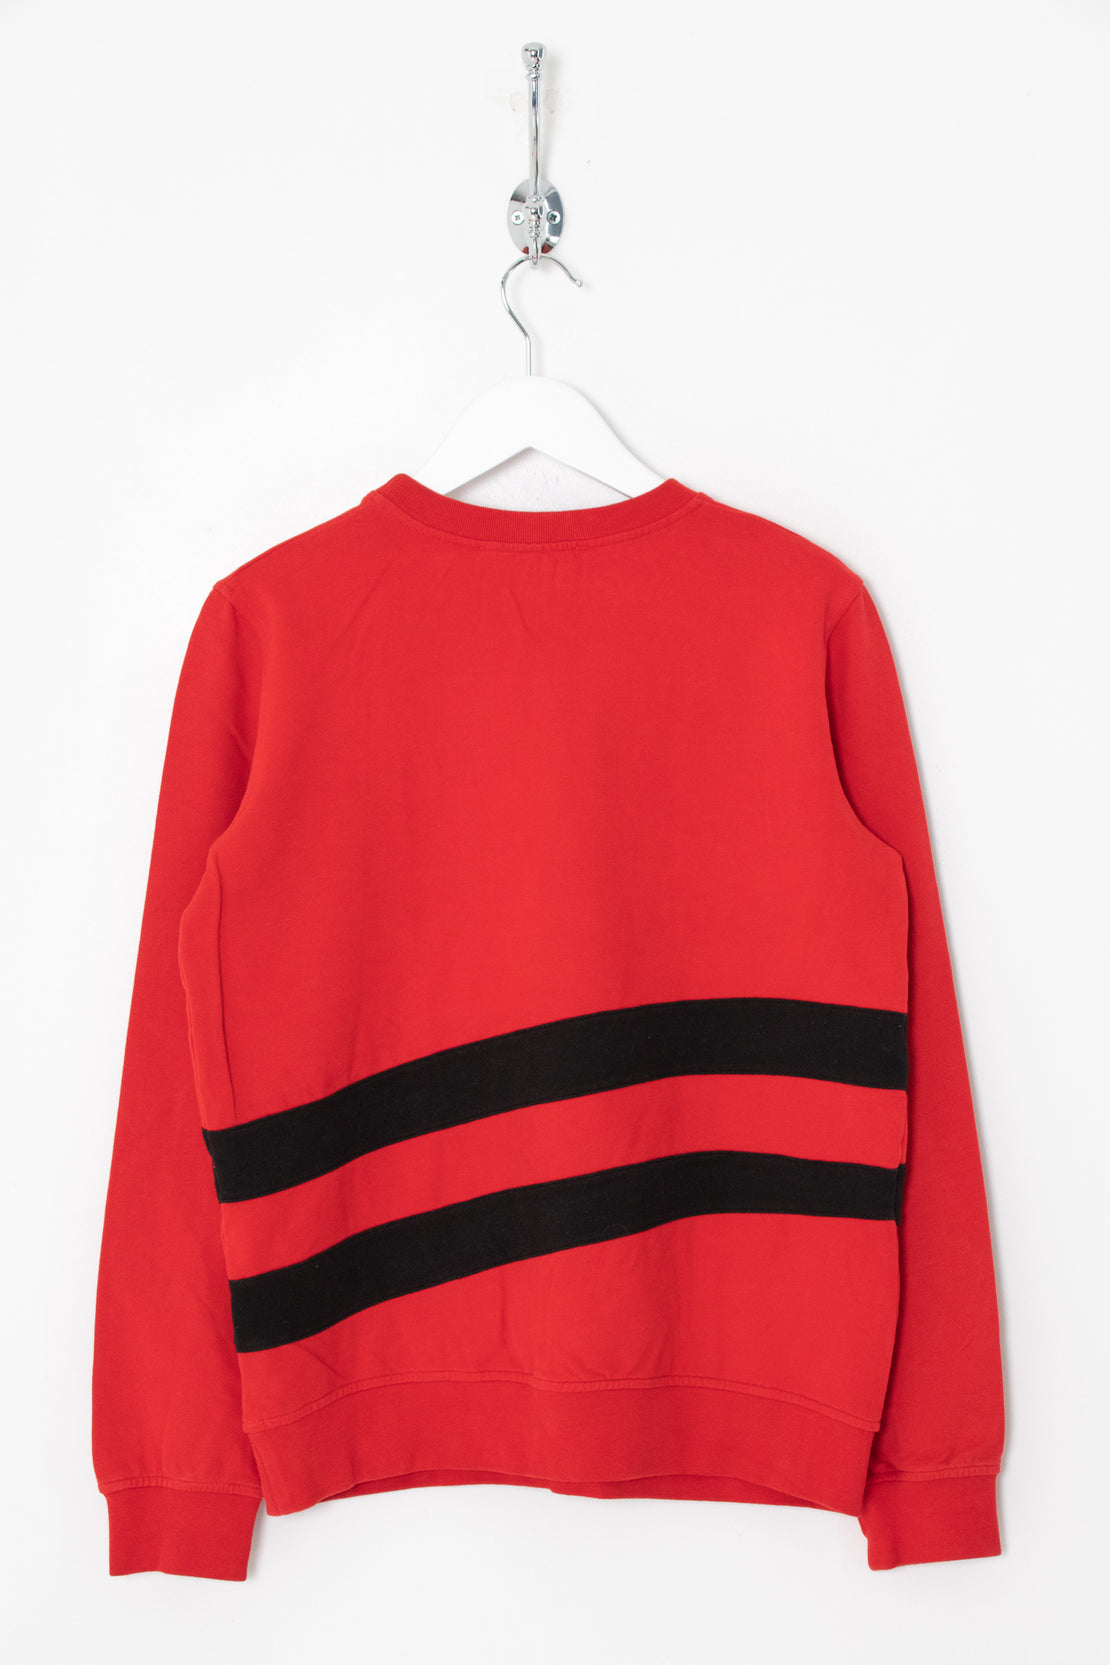 Women's Moschino Sweatshirt (S)